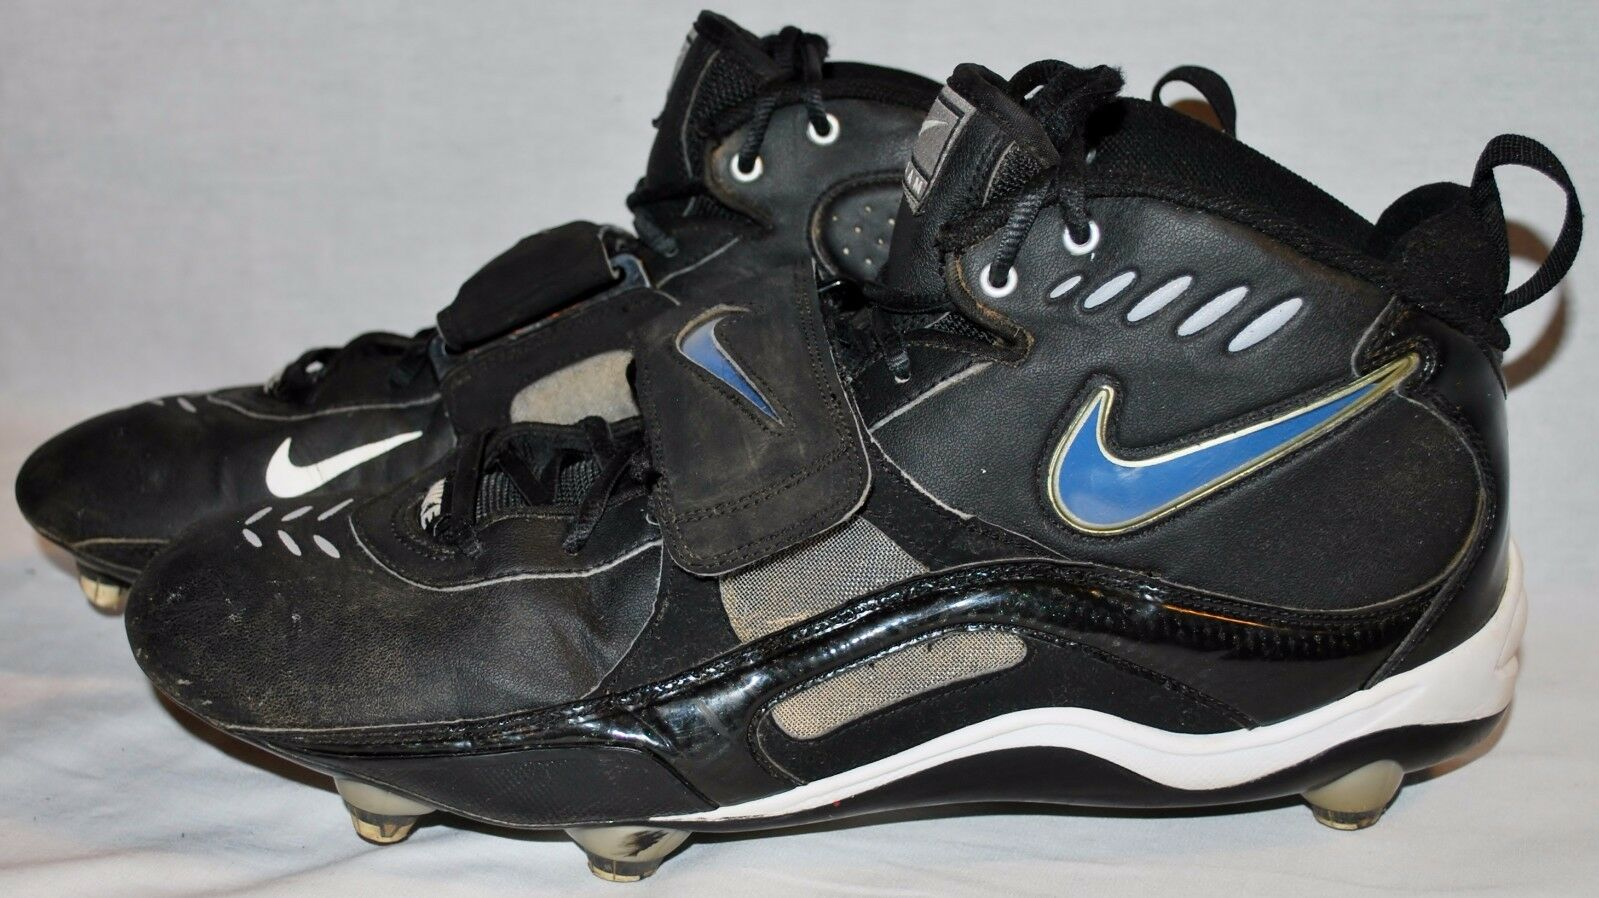 NIKE Team Ball Cleats Black/White ~ SIZE 13 ~ Circa 2006-2007  The latest discount shoes for men and women